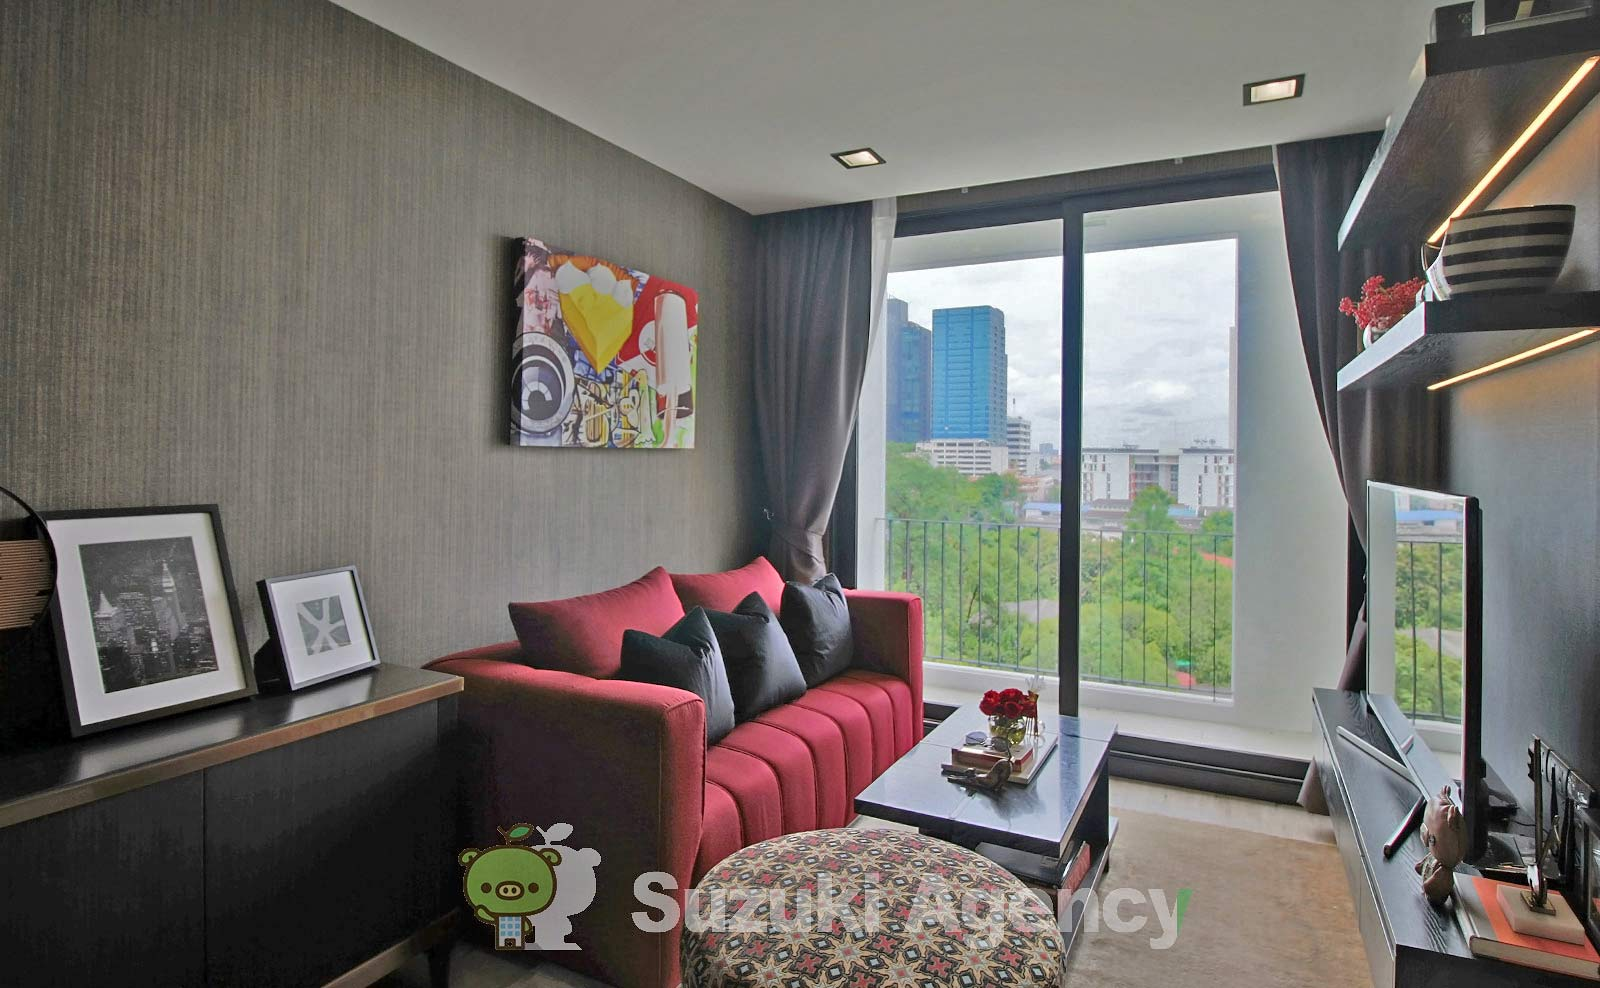 Silver Thonglor Apartment:1Bed Room Photos No.3